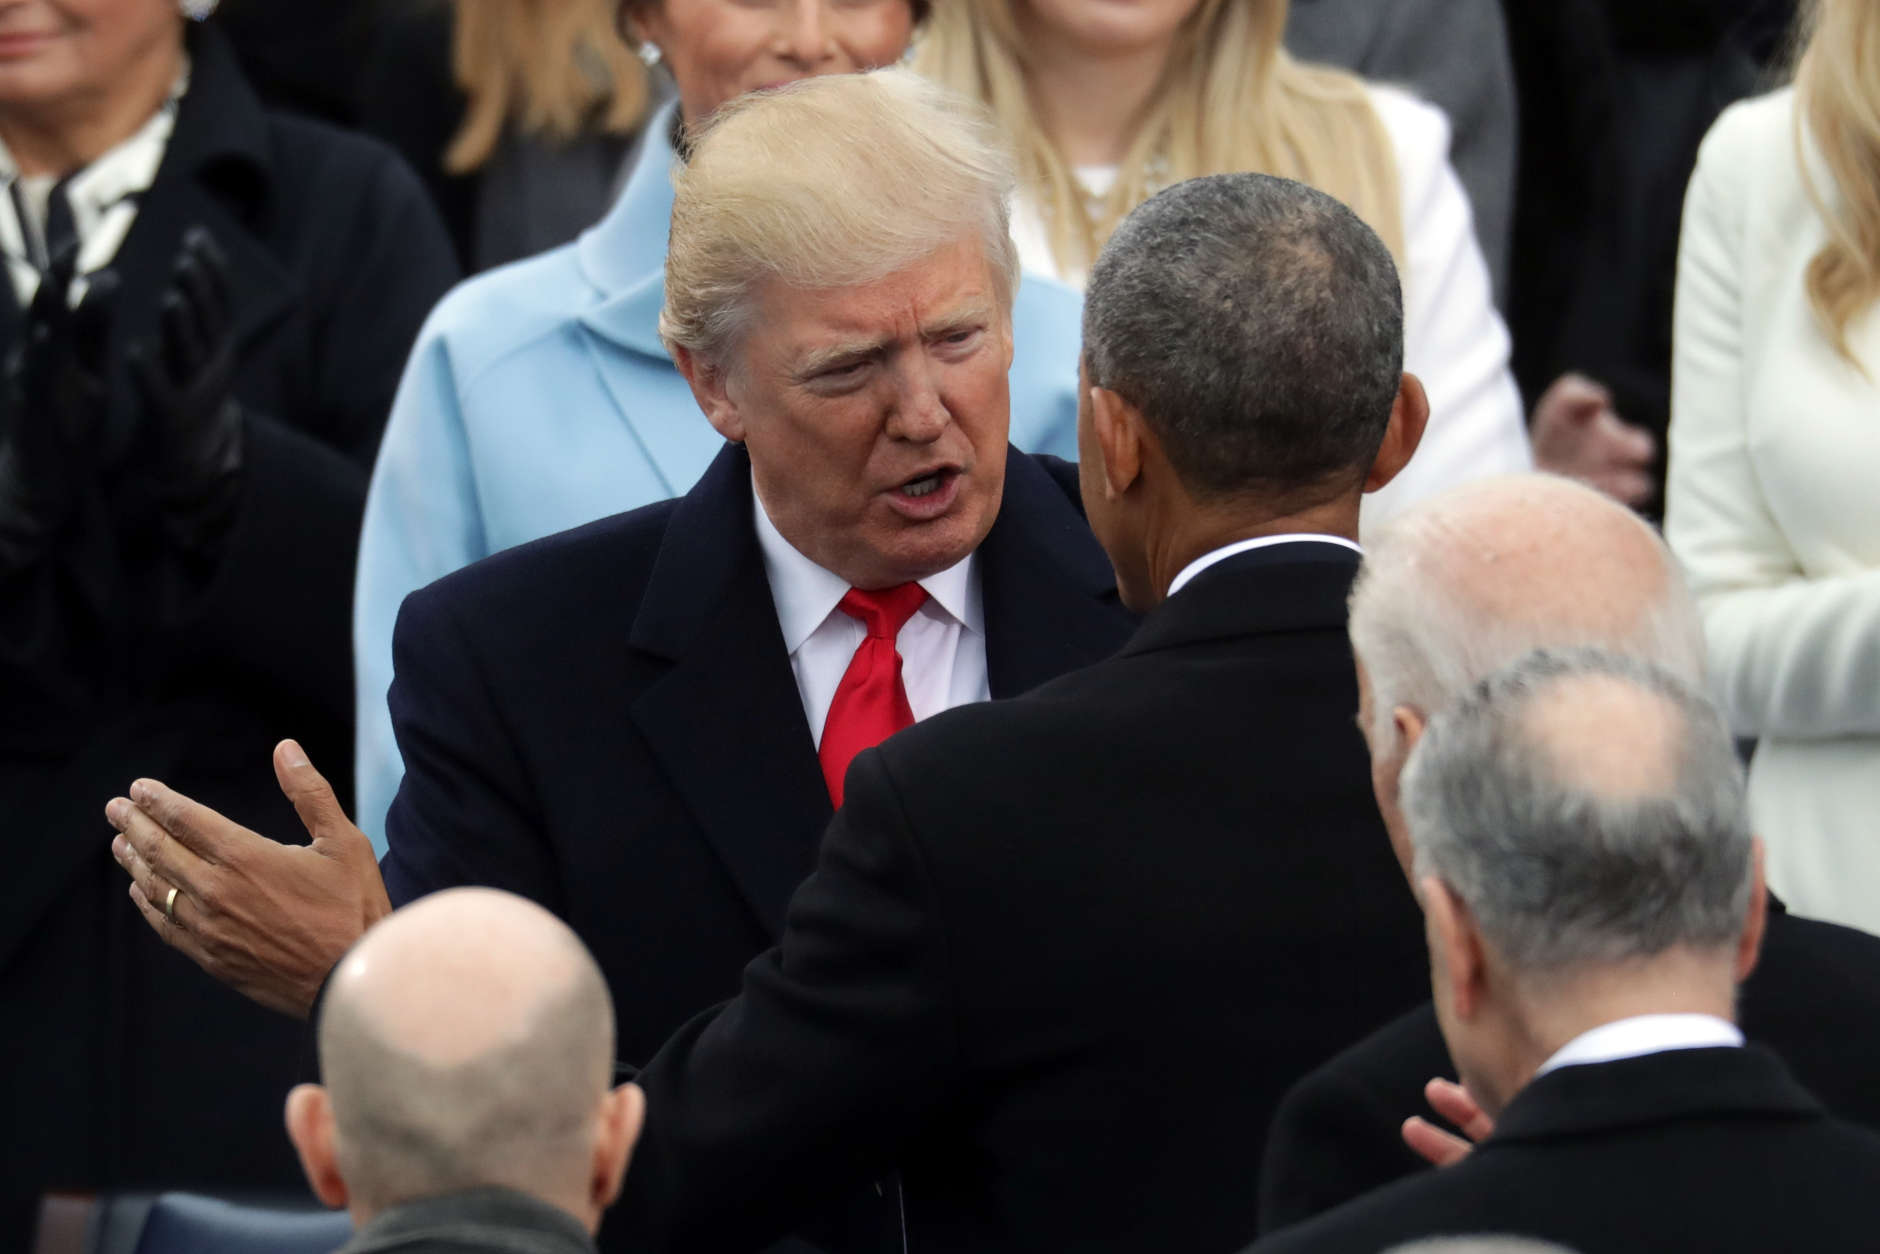 WASHINGTON, DC - JANUARY 20:  U.S. President Barack Obama (R) and President-elect Donald Trump speak on the West Front of the U.S. Capitol on January 20, 2017 in Washington, DC. In today's inauguration ceremony Donald J. Trump becomes the 45th president of the United States.  (Photo by Chip Somodevilla/Getty Images)